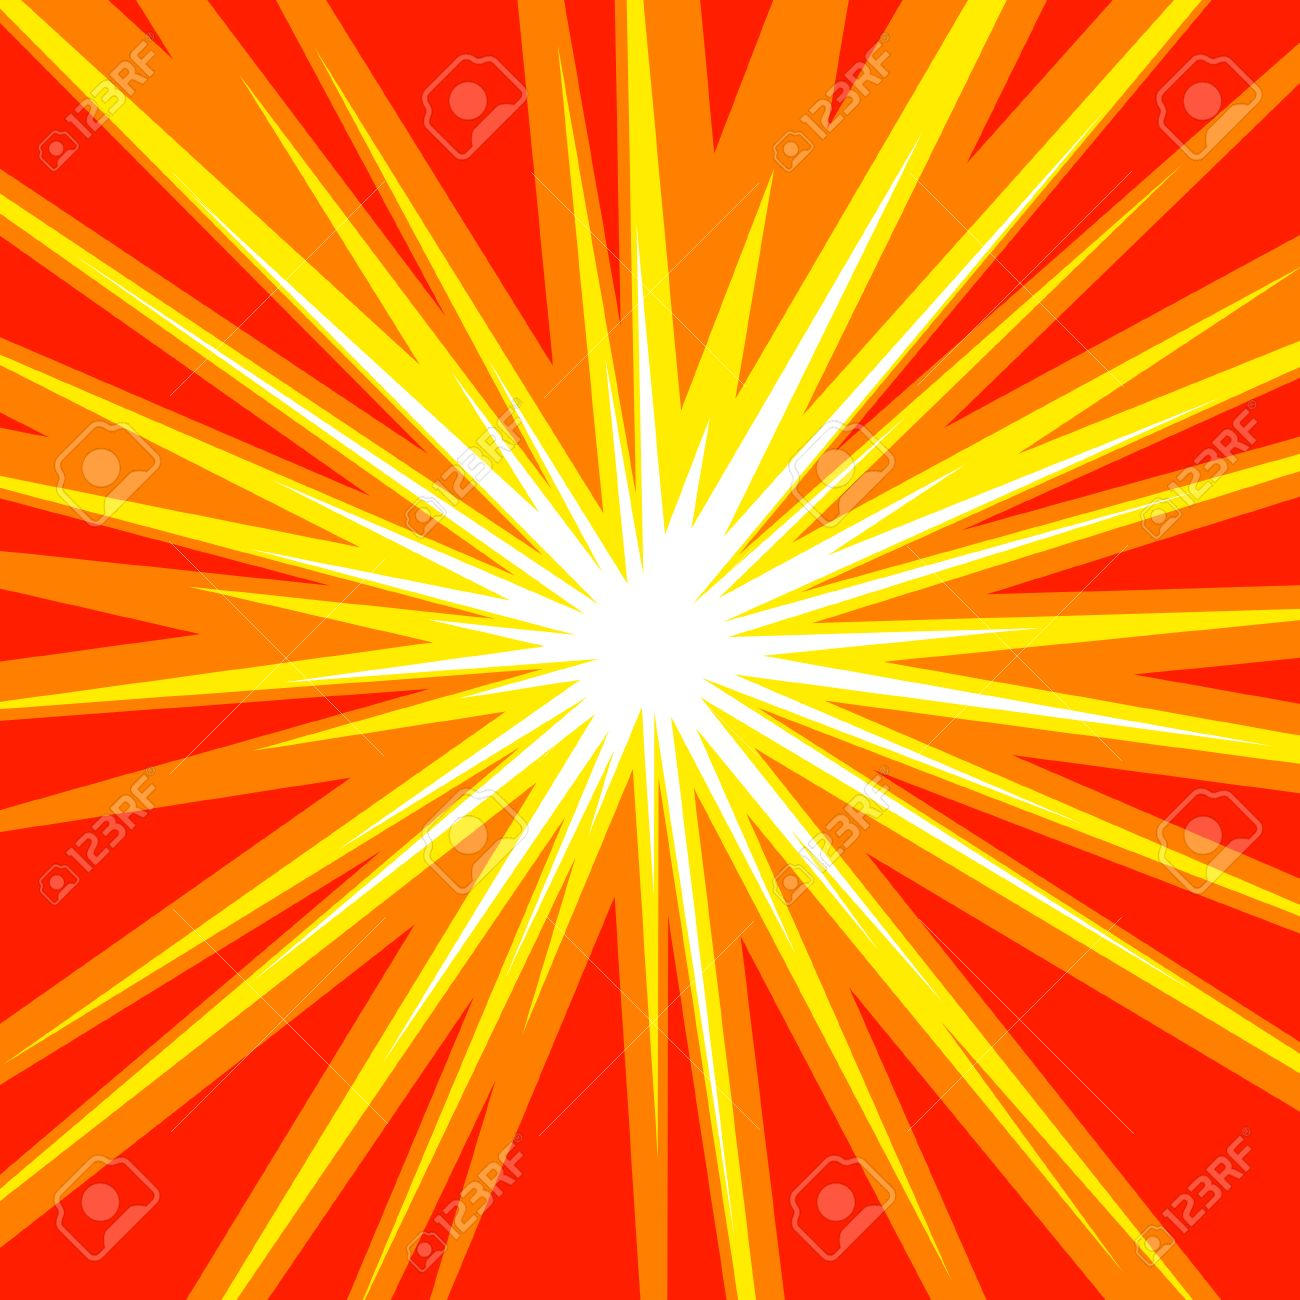 Sun Rays Or Star Burst Element Square Fight Stamp For Card Comic Red